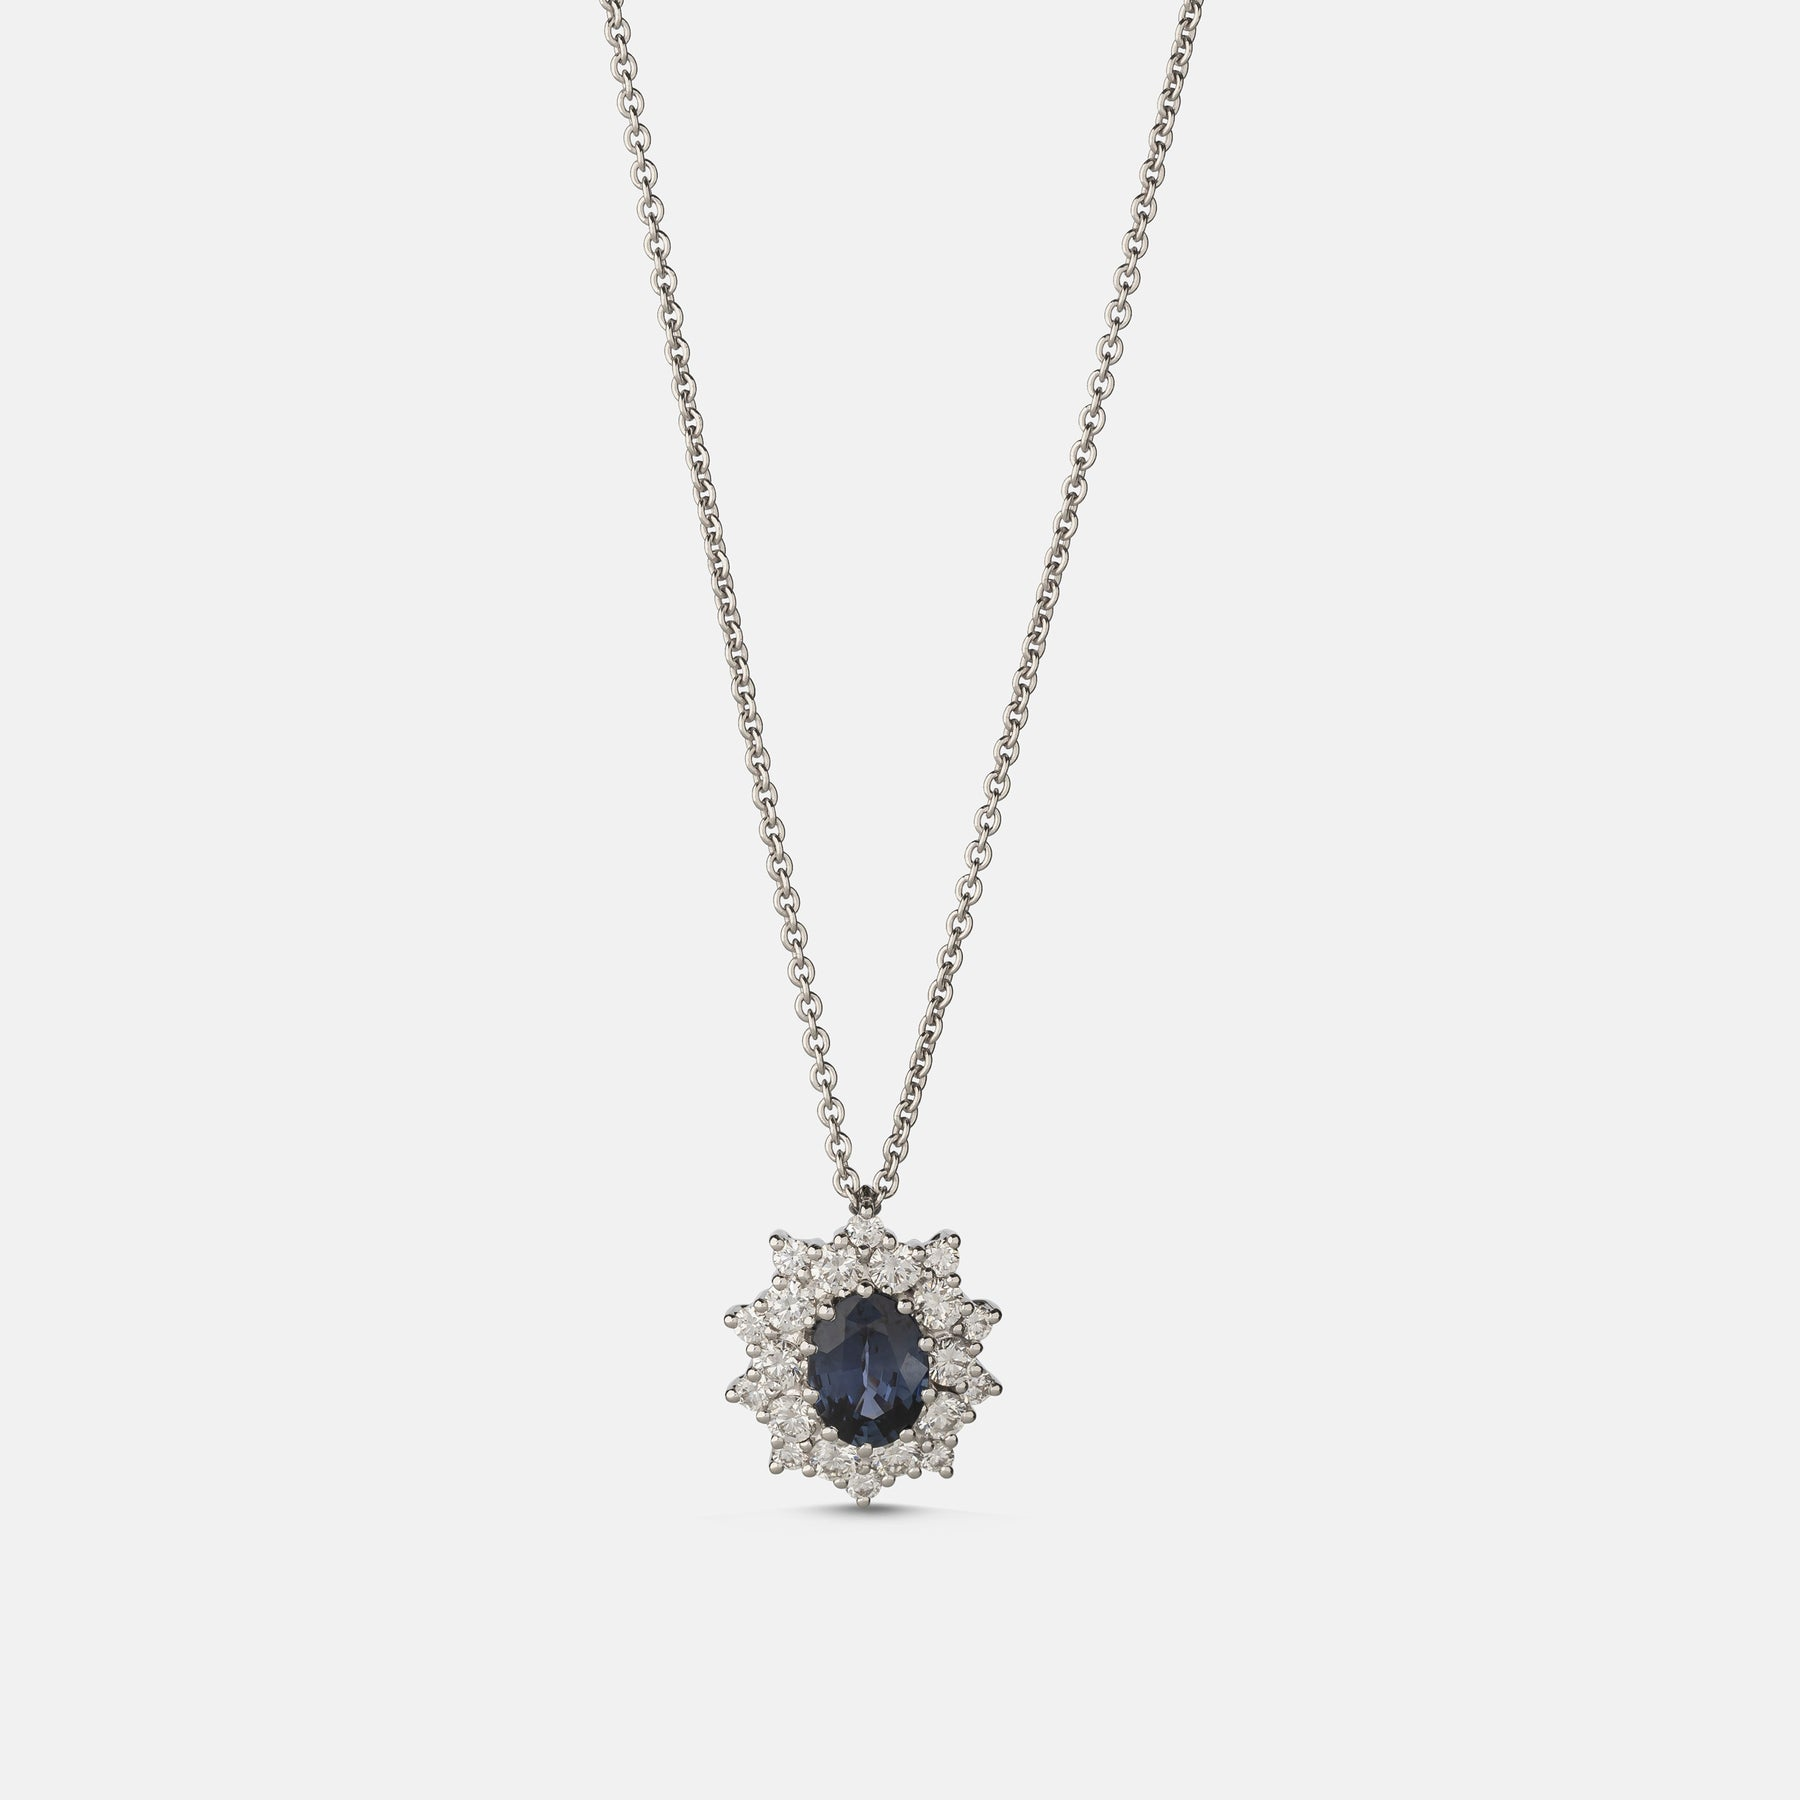 1.21ct Oval Sapphire Pendant,<br> 18ct White Gold Chain